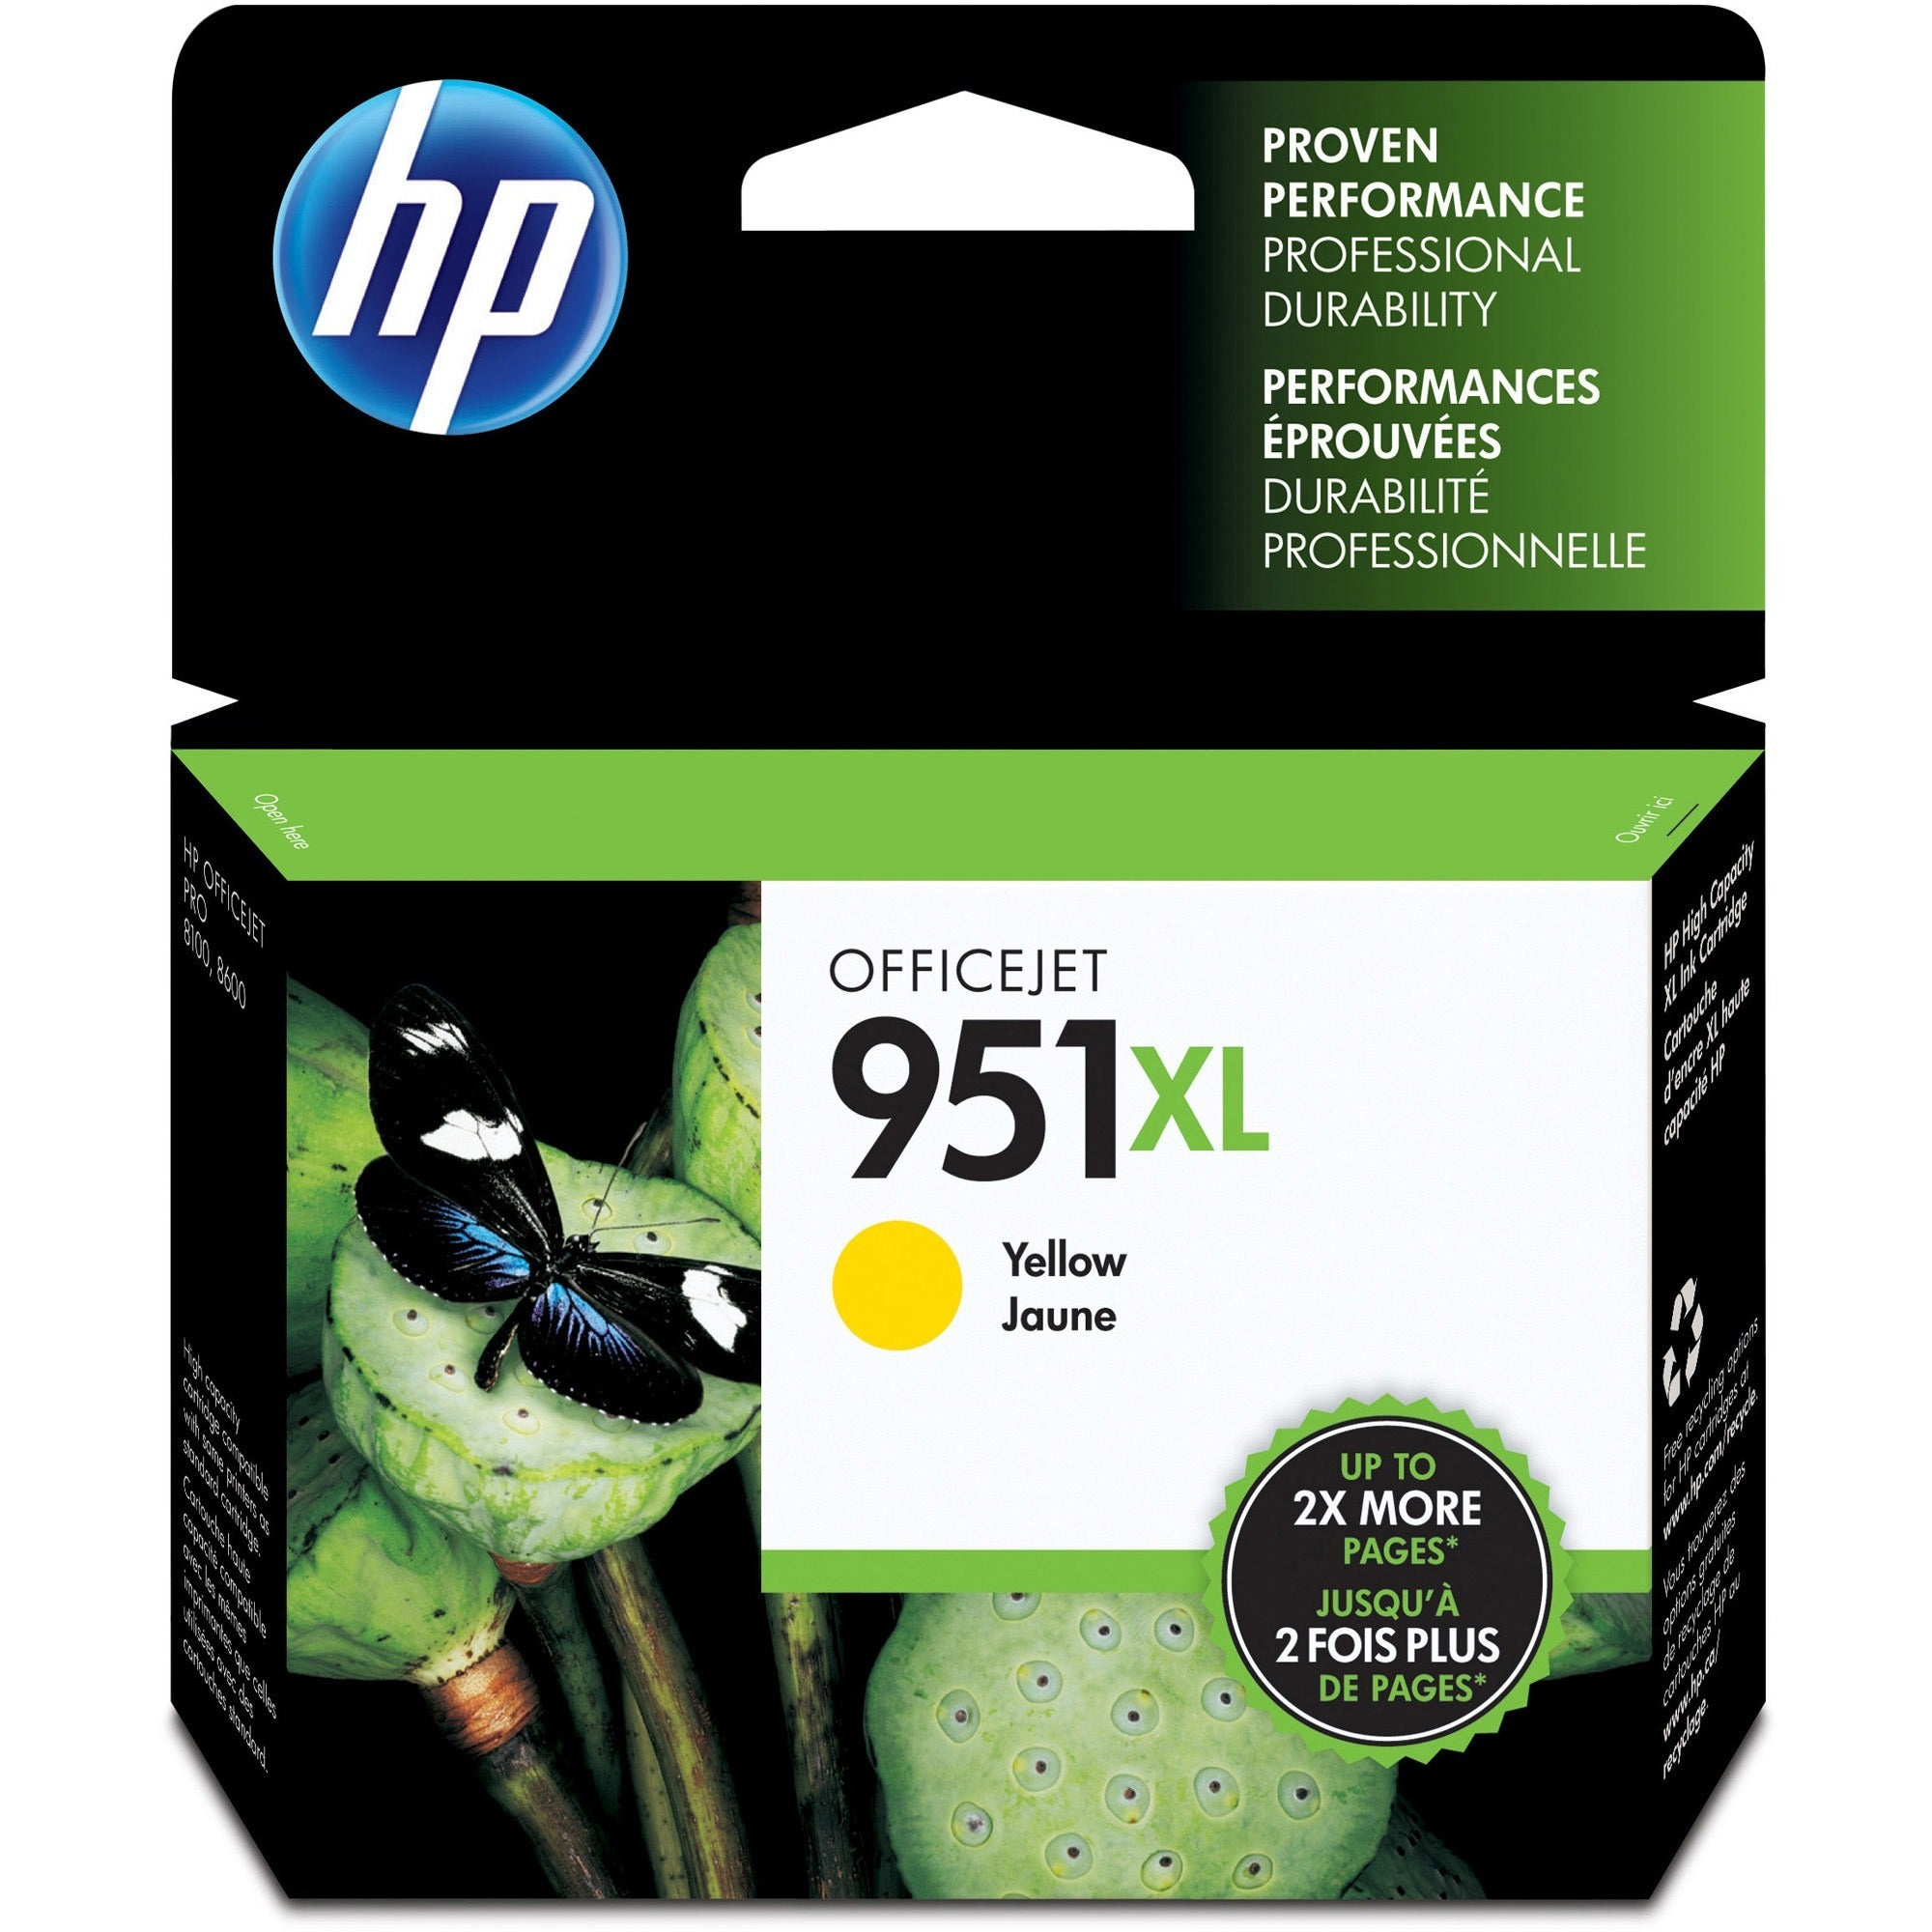 HP 951XL Original Ink Cartridge - Single Pack - Thumbnail 0